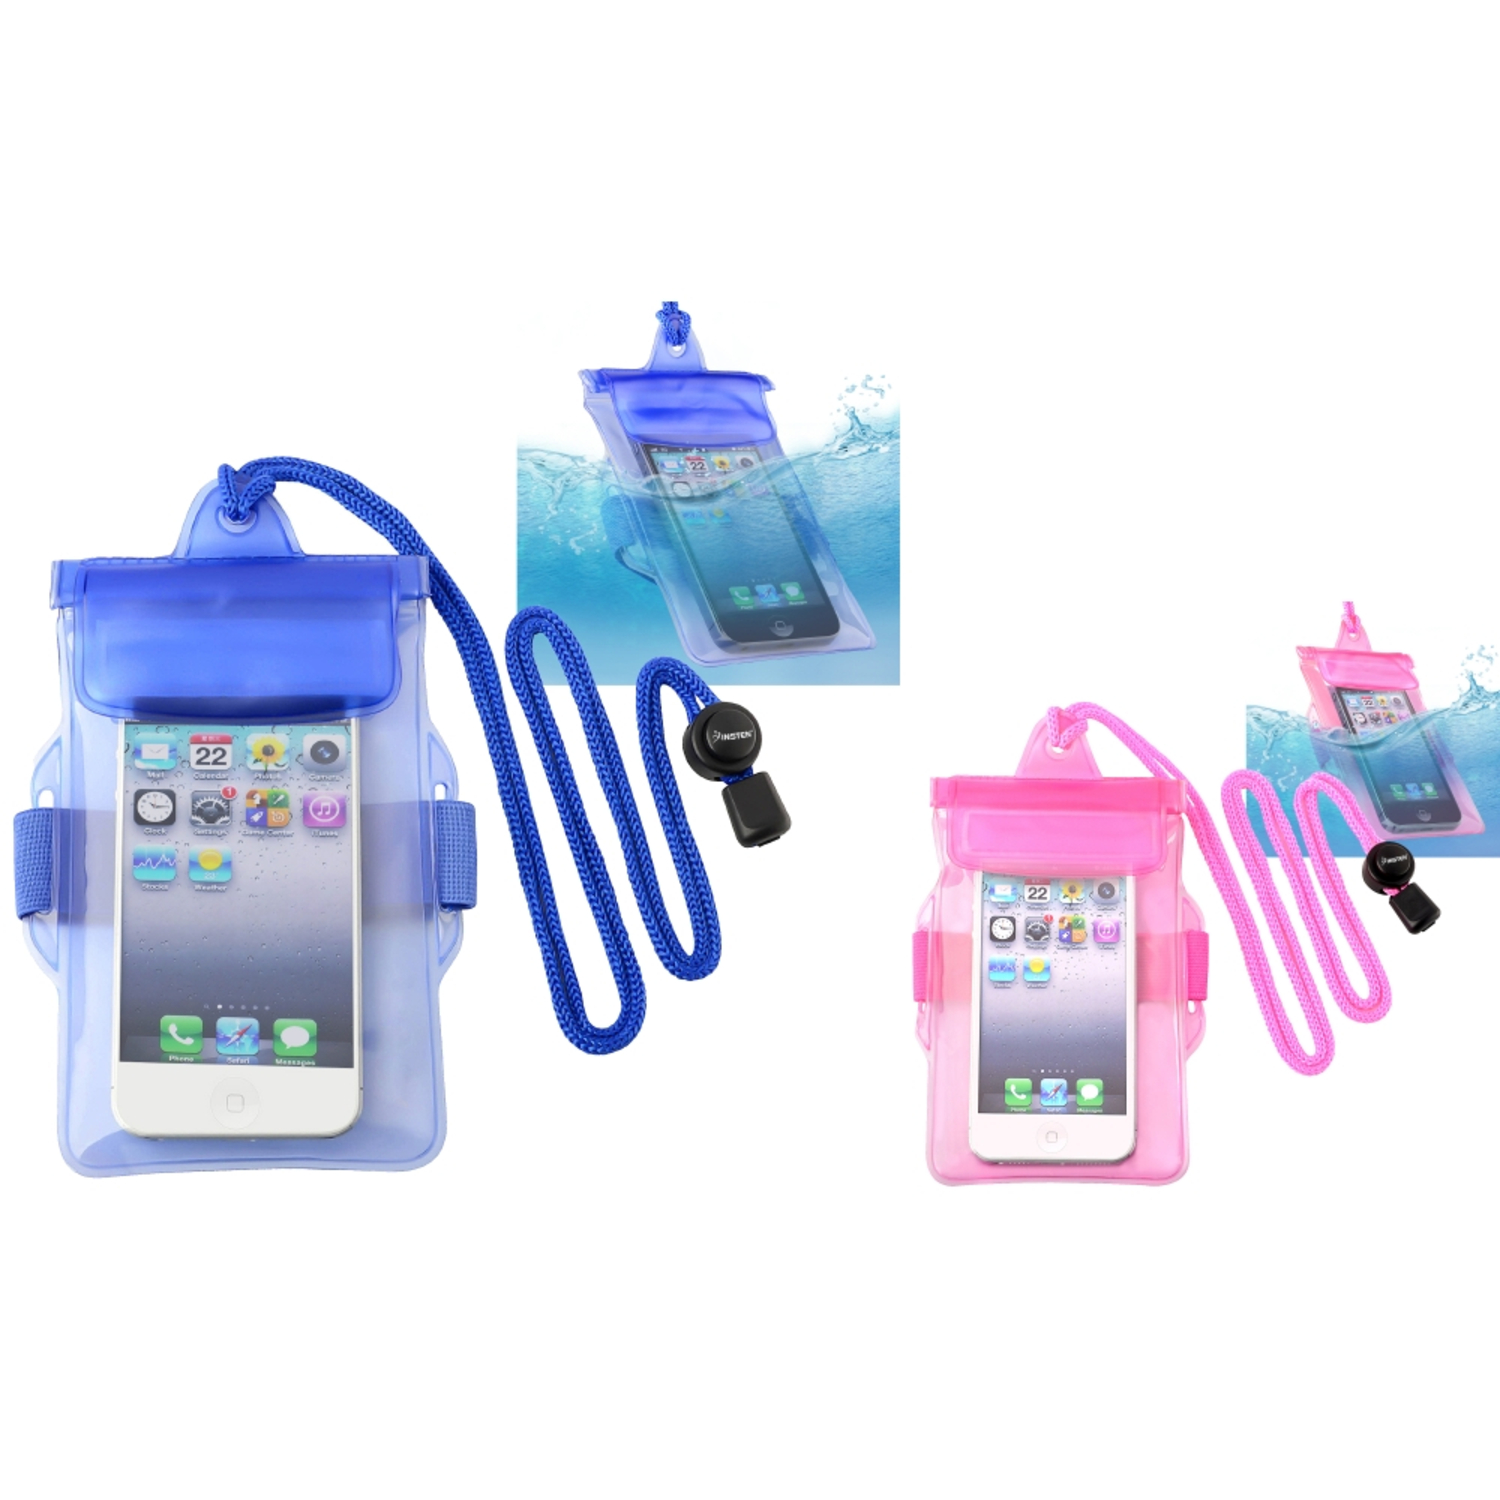 Insten 2-pack (Blue+Hot Pink) Waterproof Bag Case For iPhone 5S 5C 5 4 4S / LG VS840 VS740 VN530 VN250 LS696 LS670 LN510